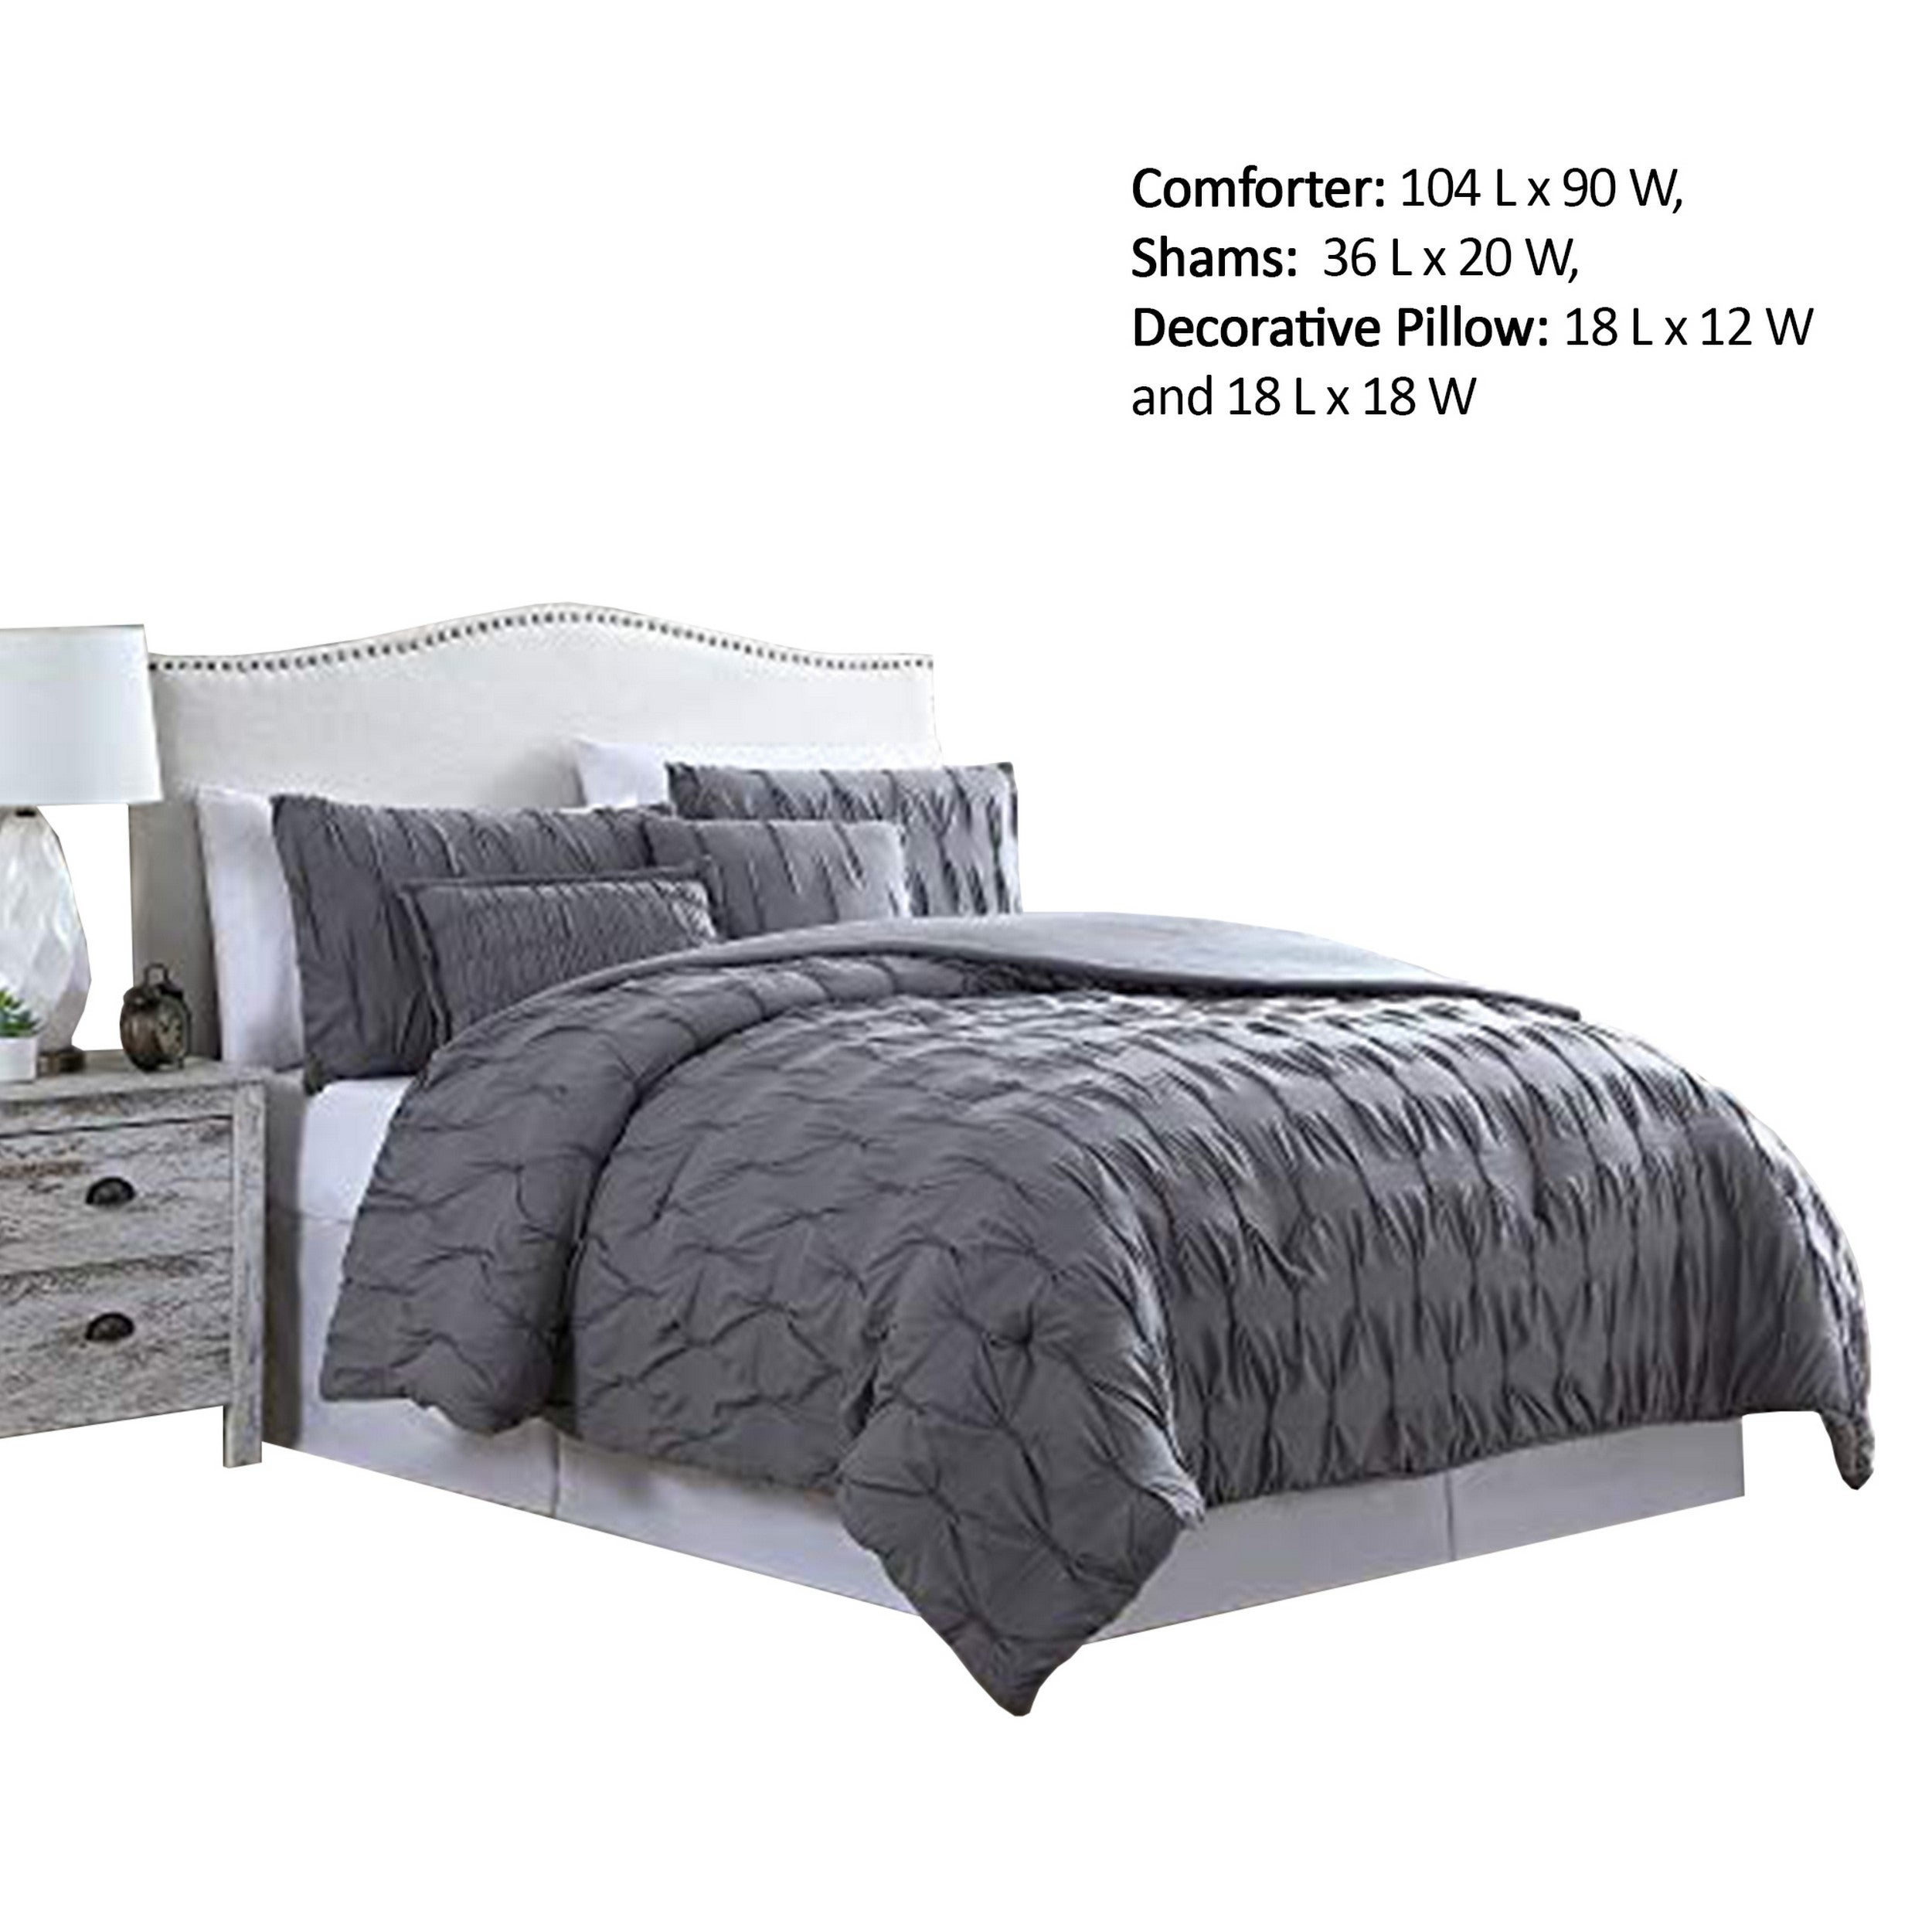 Bergen 5 Piece King Comforter Set With Puckered Pattern The Urban Port Charcoal Gray On Sale Overstock 32275989